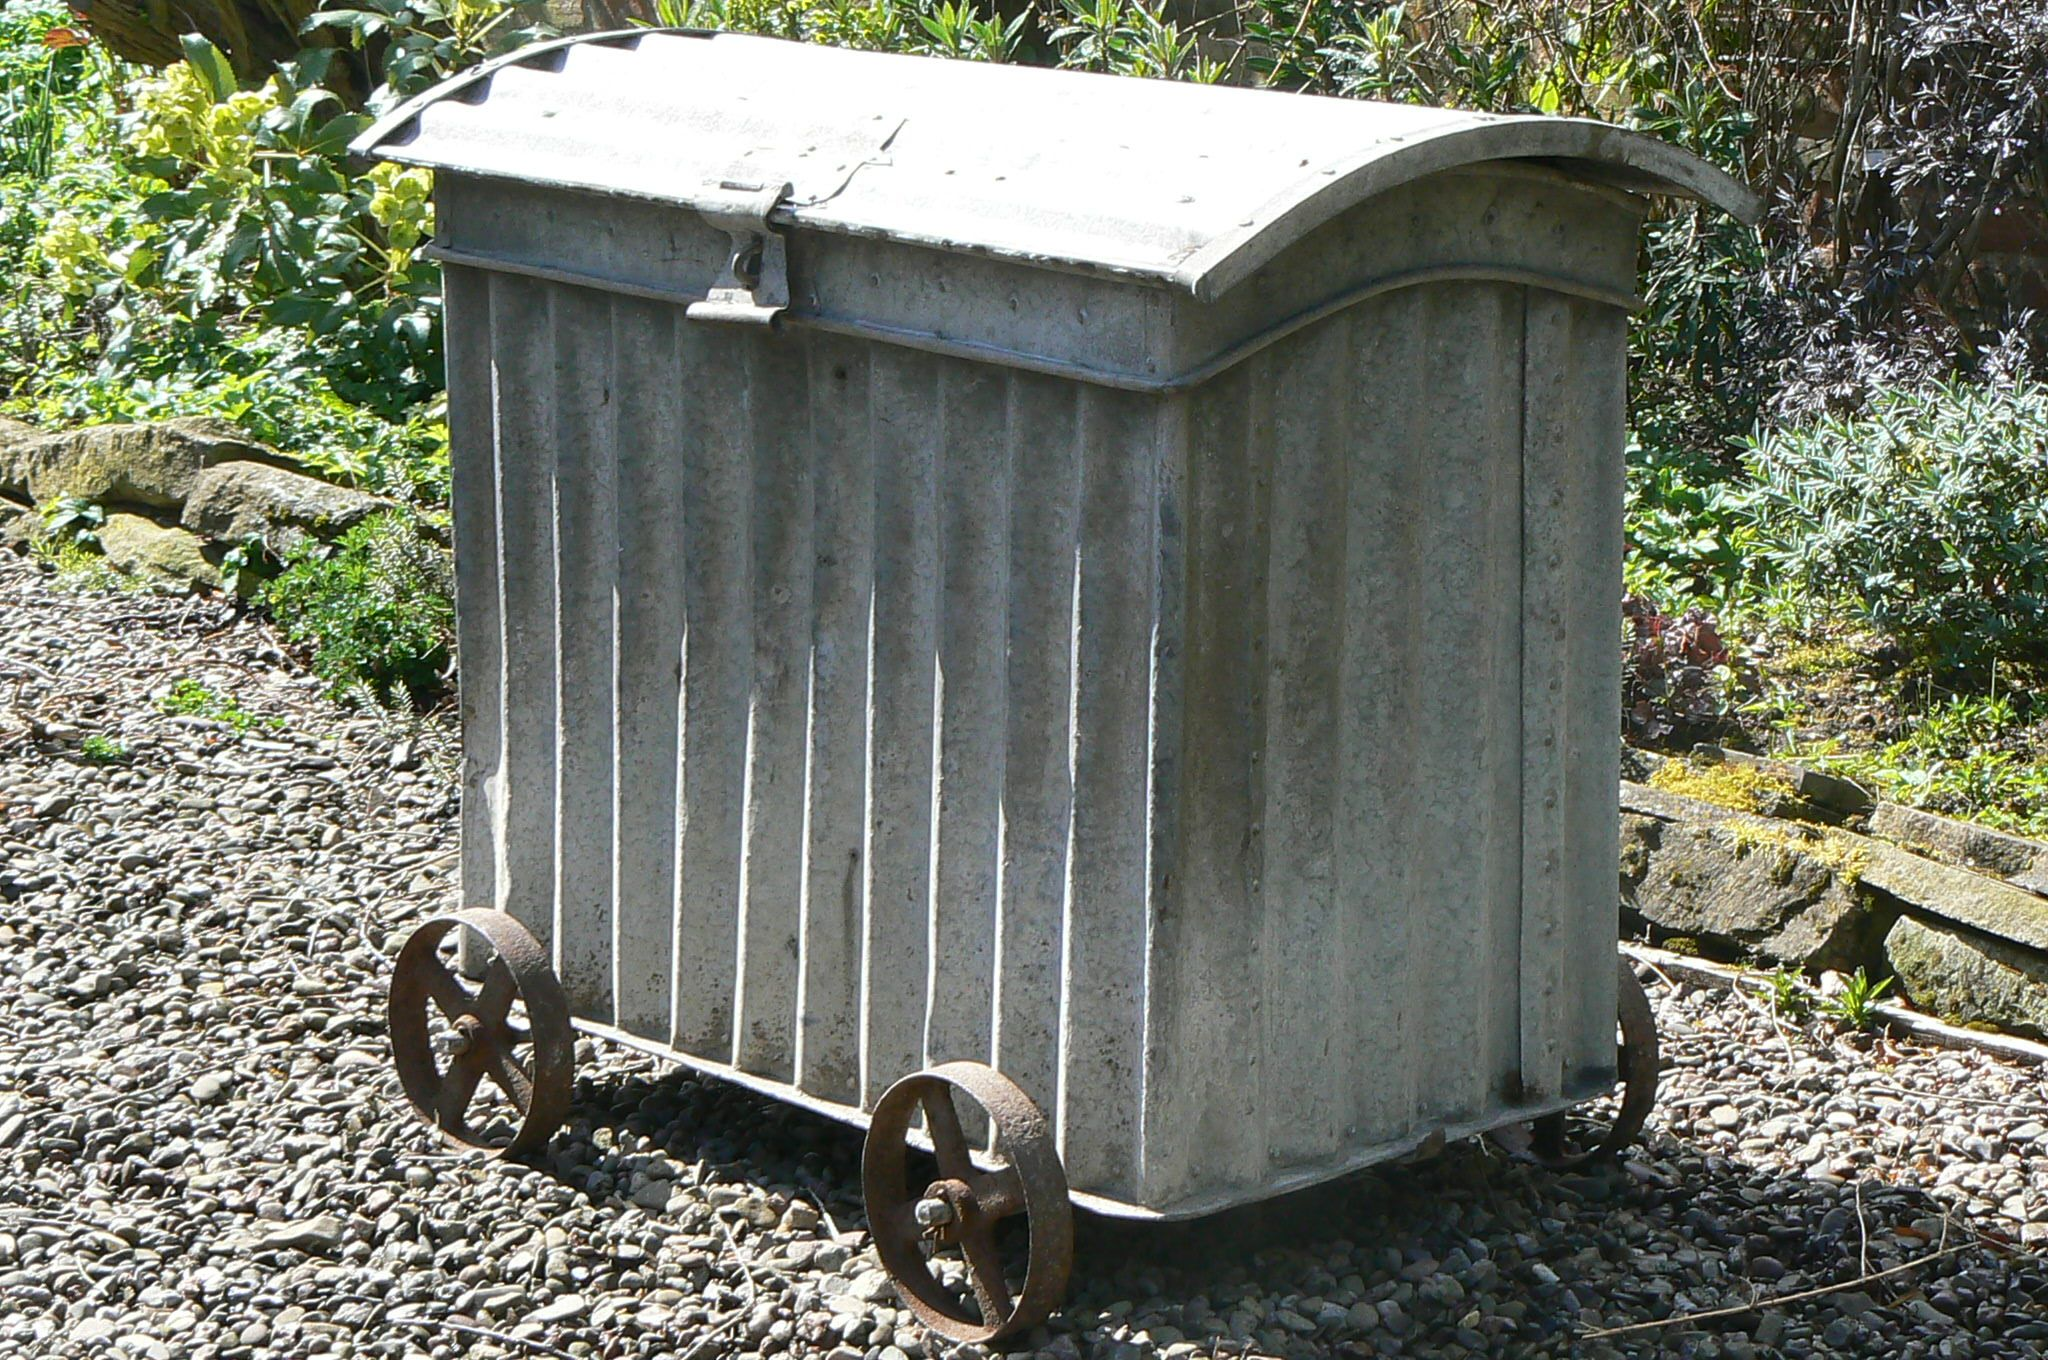 Galvanized Storage Bins | Holloways Garden Antiques  U003e Miscellaneous  U003e Galvanized  Storage Bin